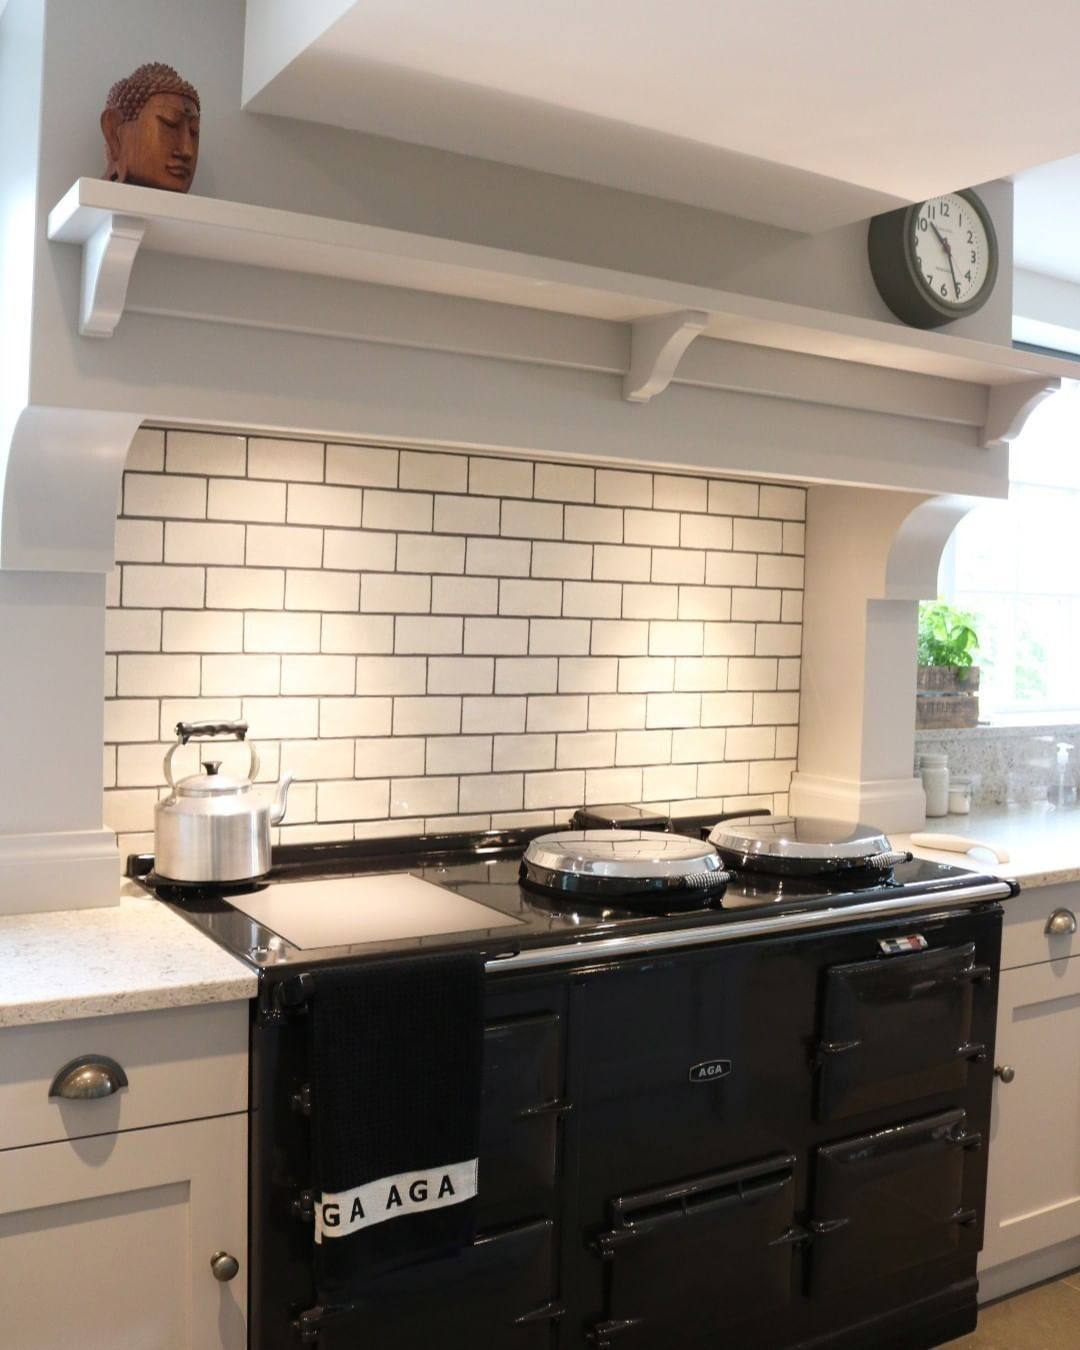 Image May Contain 1 Person Kitchen And Indoor Kitchen Mantle Shelf Cabinetry